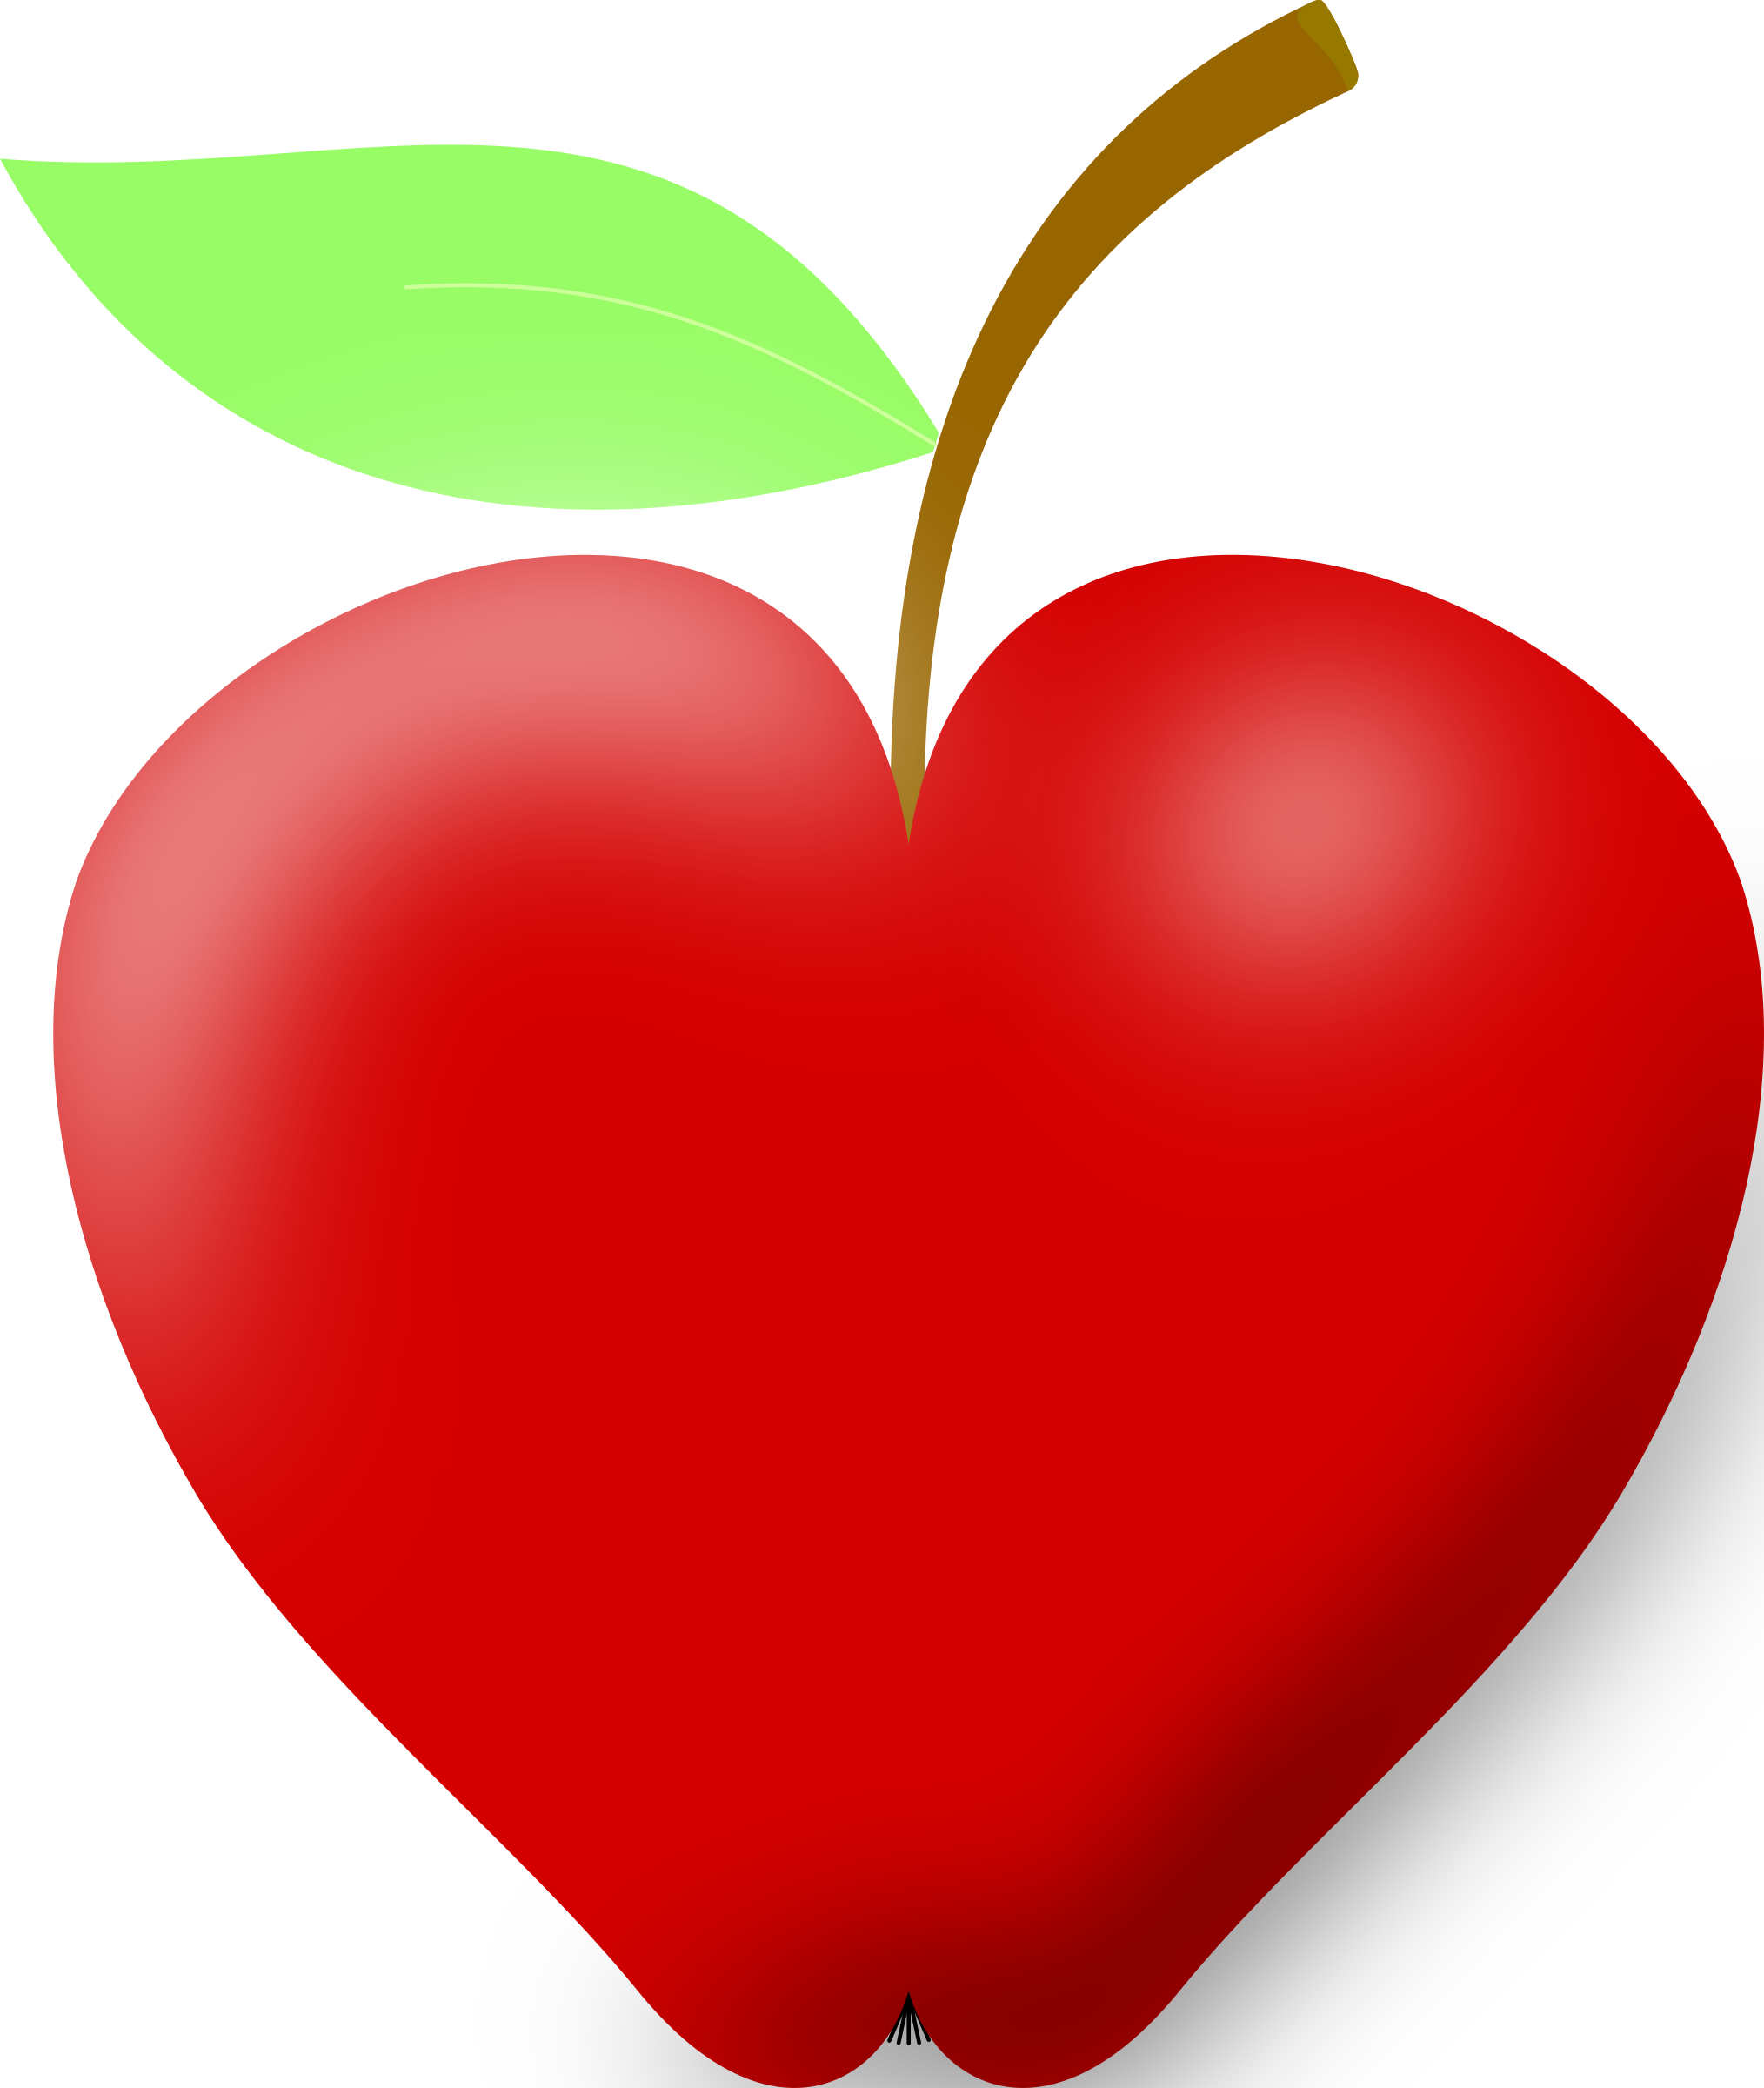 Heart shaped pizza clipart image library library Apple clipart heart image library library